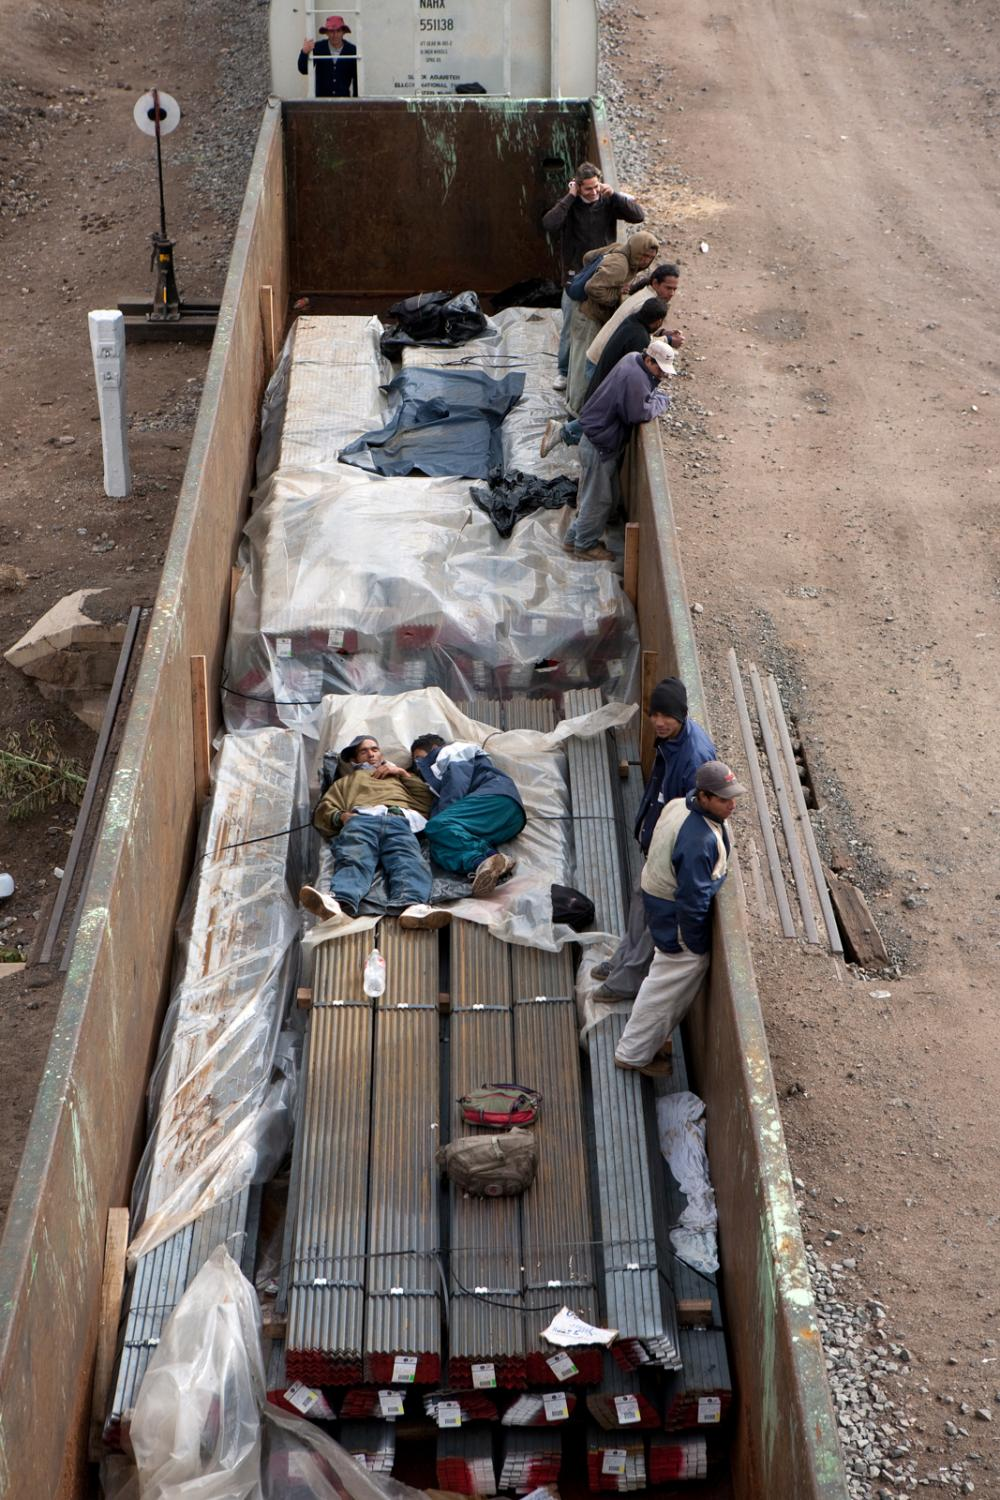 MEXICO Central America migrants travel on a freight train heading north in Zacatecas state on June 10, 2018. The journey from Central America to the U.S.-Mexico border is dangerous and long with no assurance they will make it to their destination.